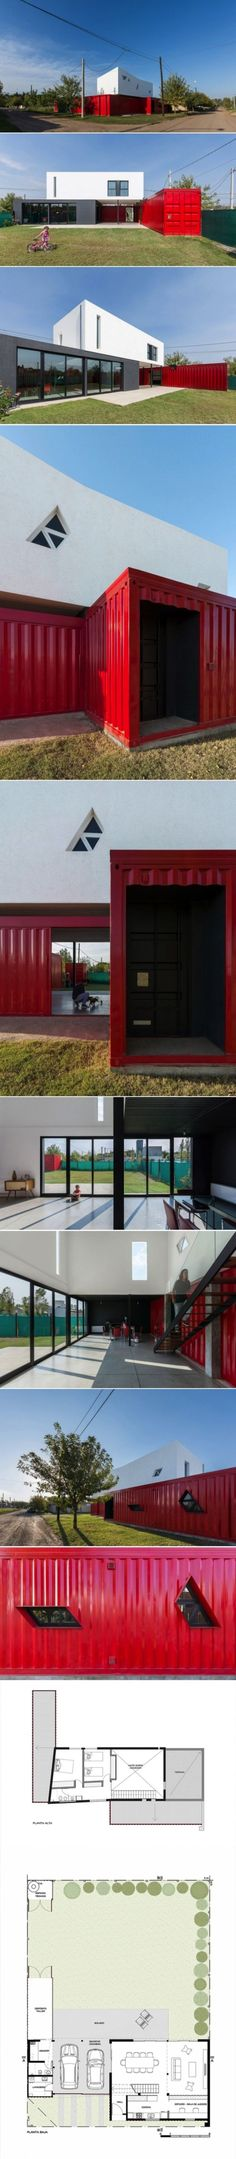 Container House - A Container Home With Personality - Who Else Wants Simple Step-By-Step Plans To Design And Build A Container Home From Scratch? Container Home Designs, Shipping Container Design, Cargo Container Homes, Building A Container Home, Shipping Container House Plans, Container Buildings, Storage Container Homes, Container Architecture, Shipping Containers